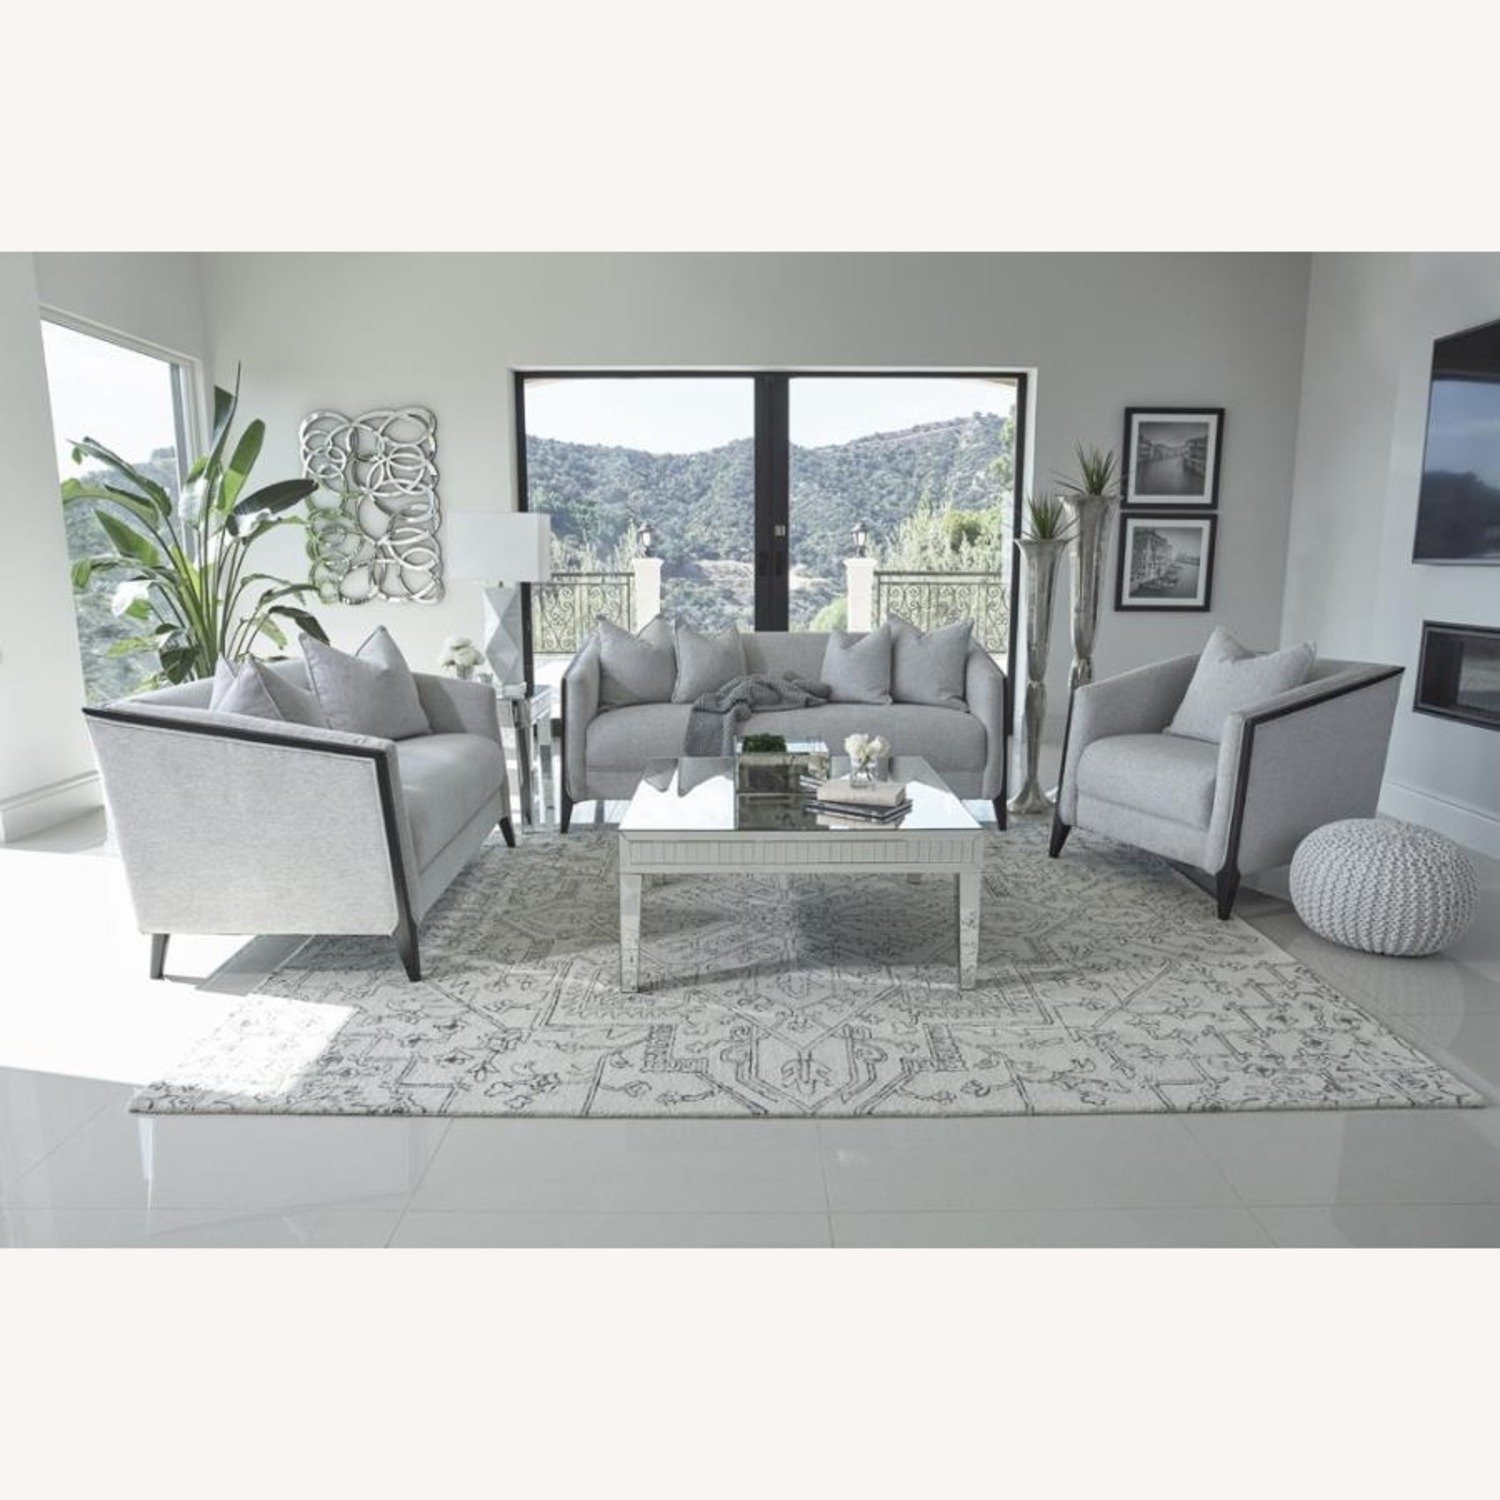 Sofa In Dove Grey Low Pile Chenille Upholstery - image-2